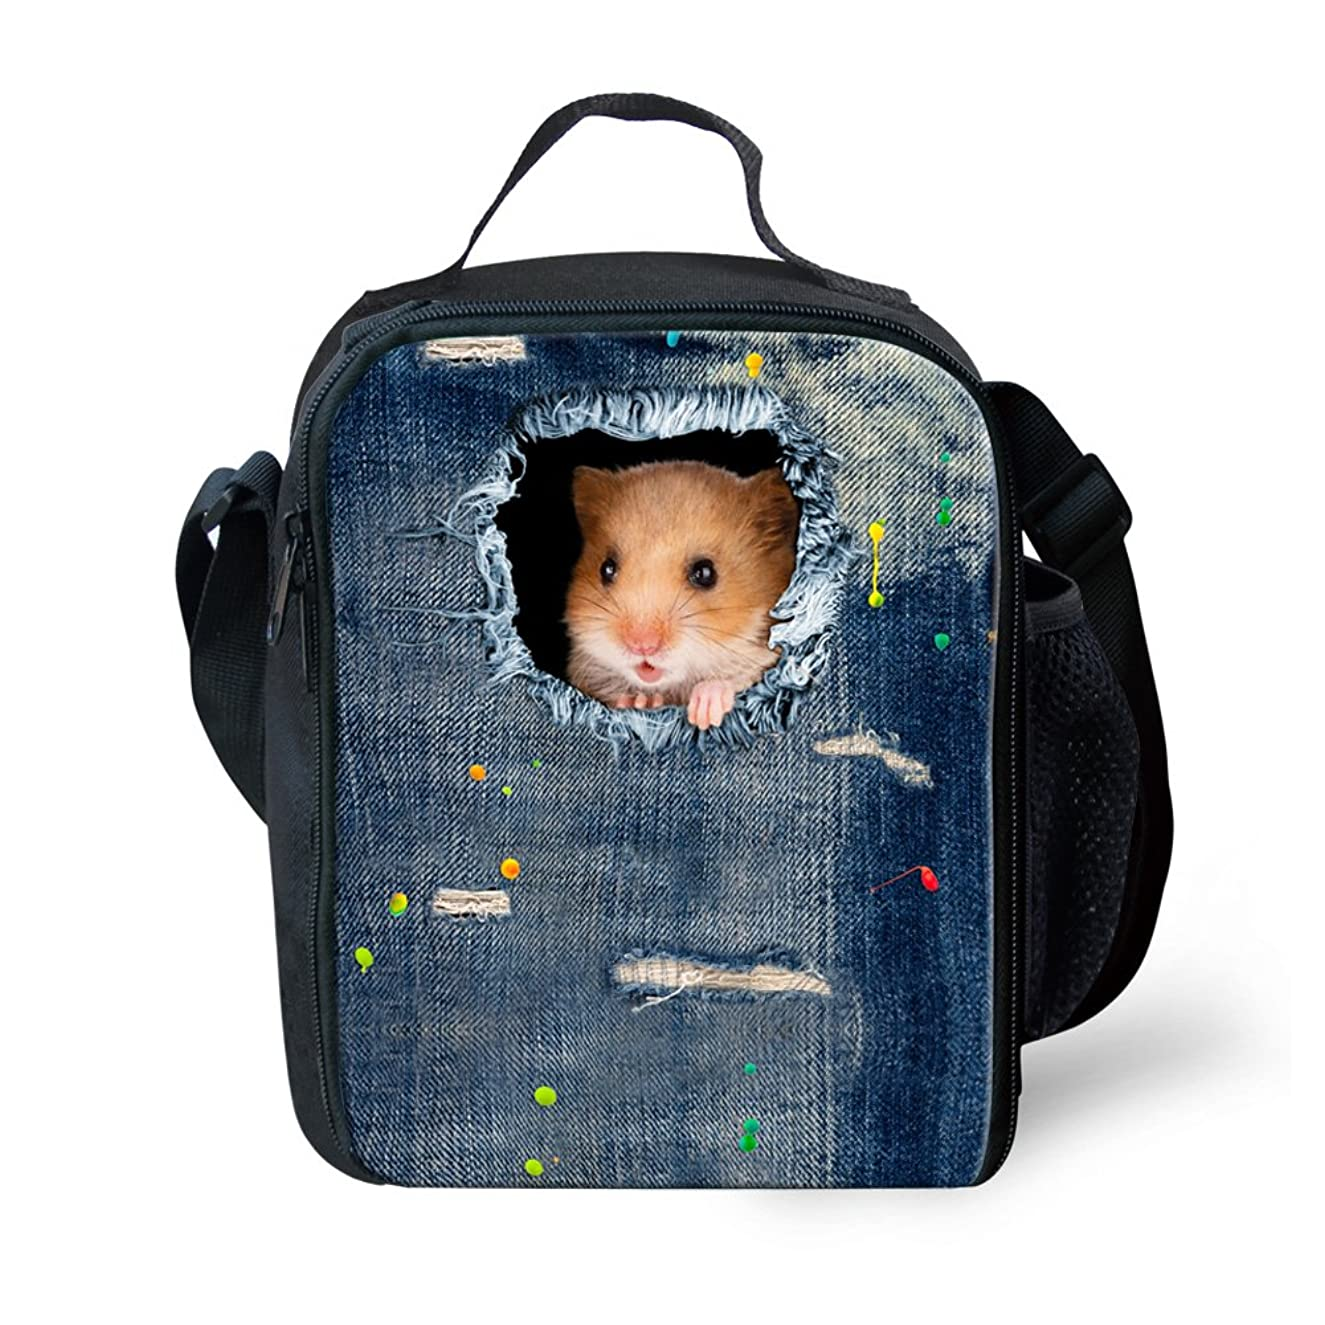 HUGS IDEA Vintage Blue Denim Thermal Insulated Lunch Bags Cute Animal Mouse Printed Box